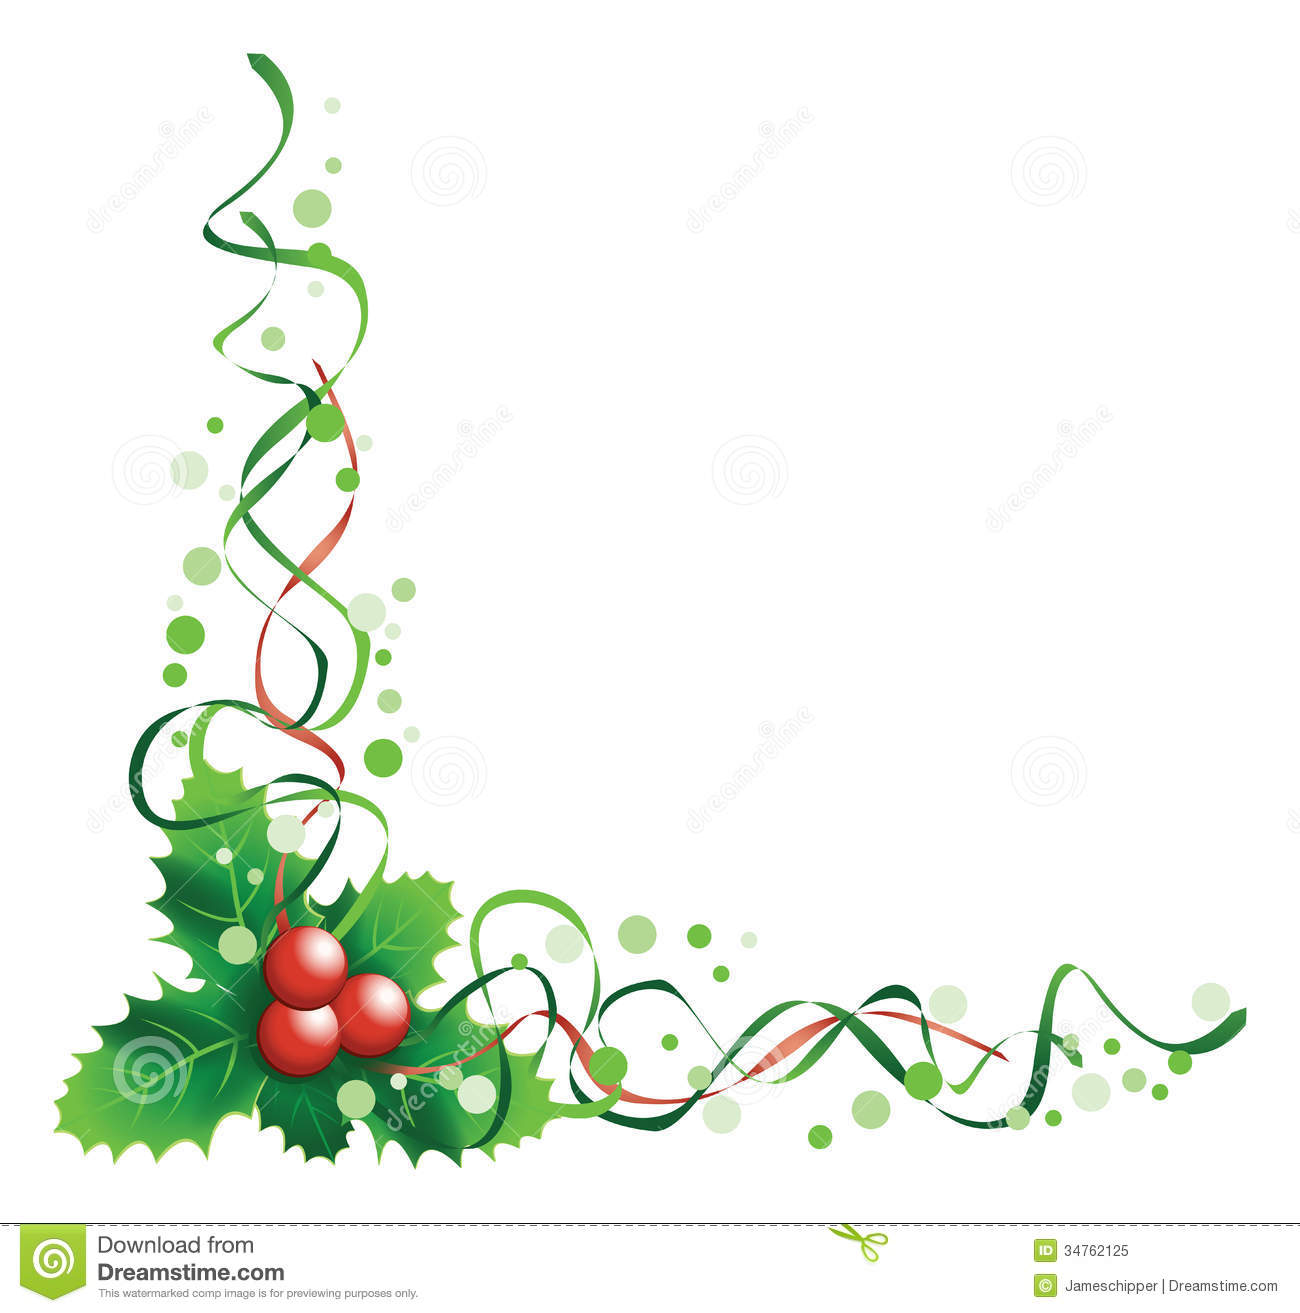 Christmas Holly Royalty Free Stock Photo - Image: 34762125